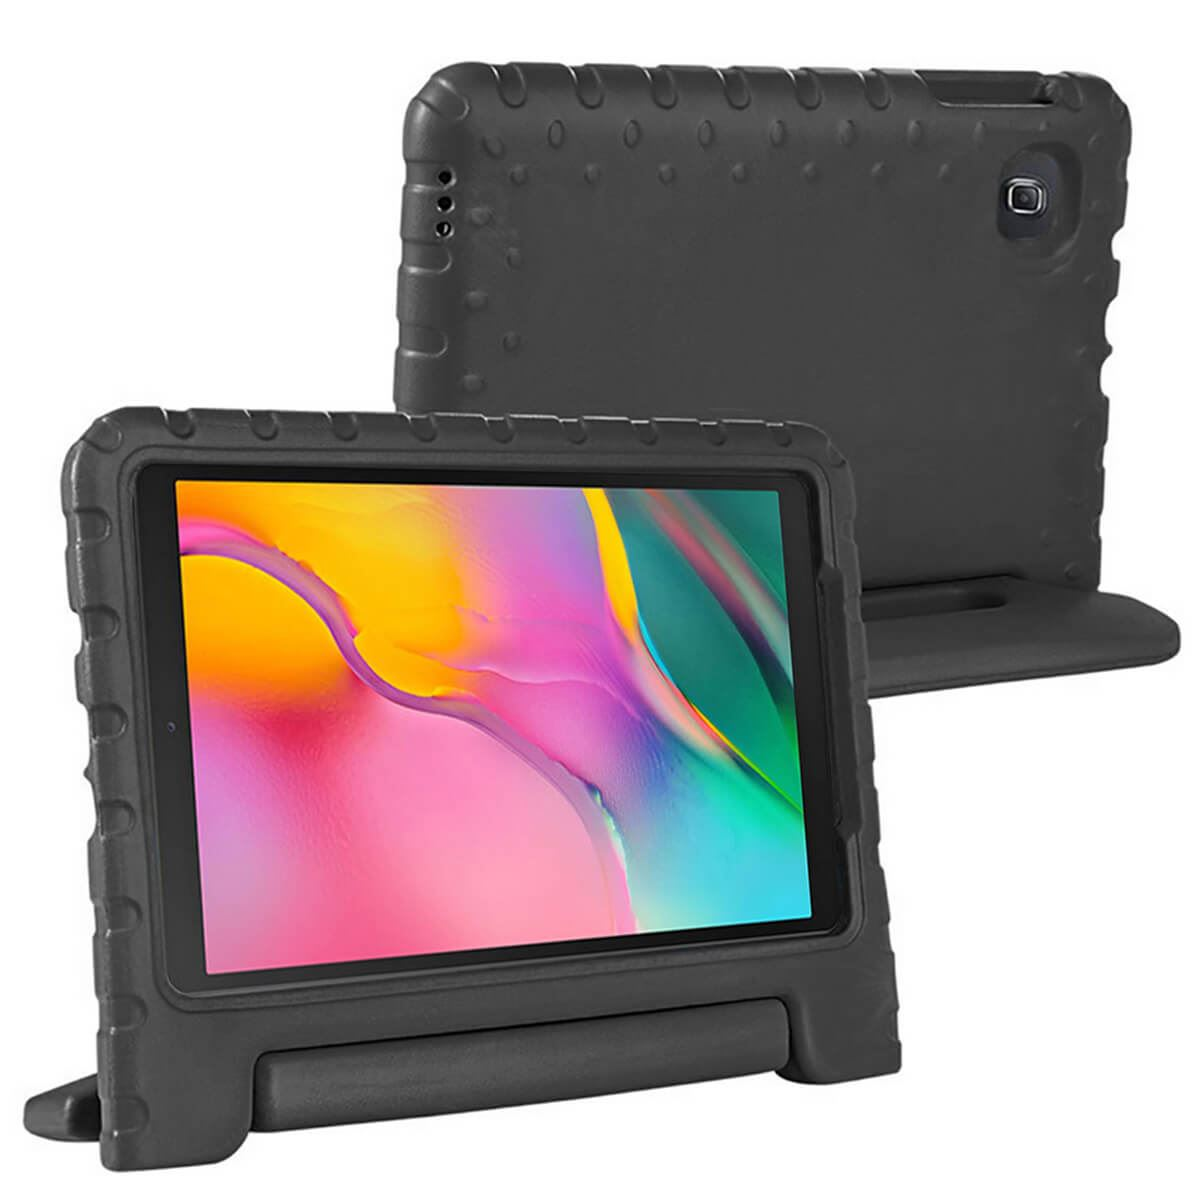 Shockproof-Protective-Case-Samsung-Galaxy-Tab-A-10-1-2016-Kids-Cover thumbnail 4